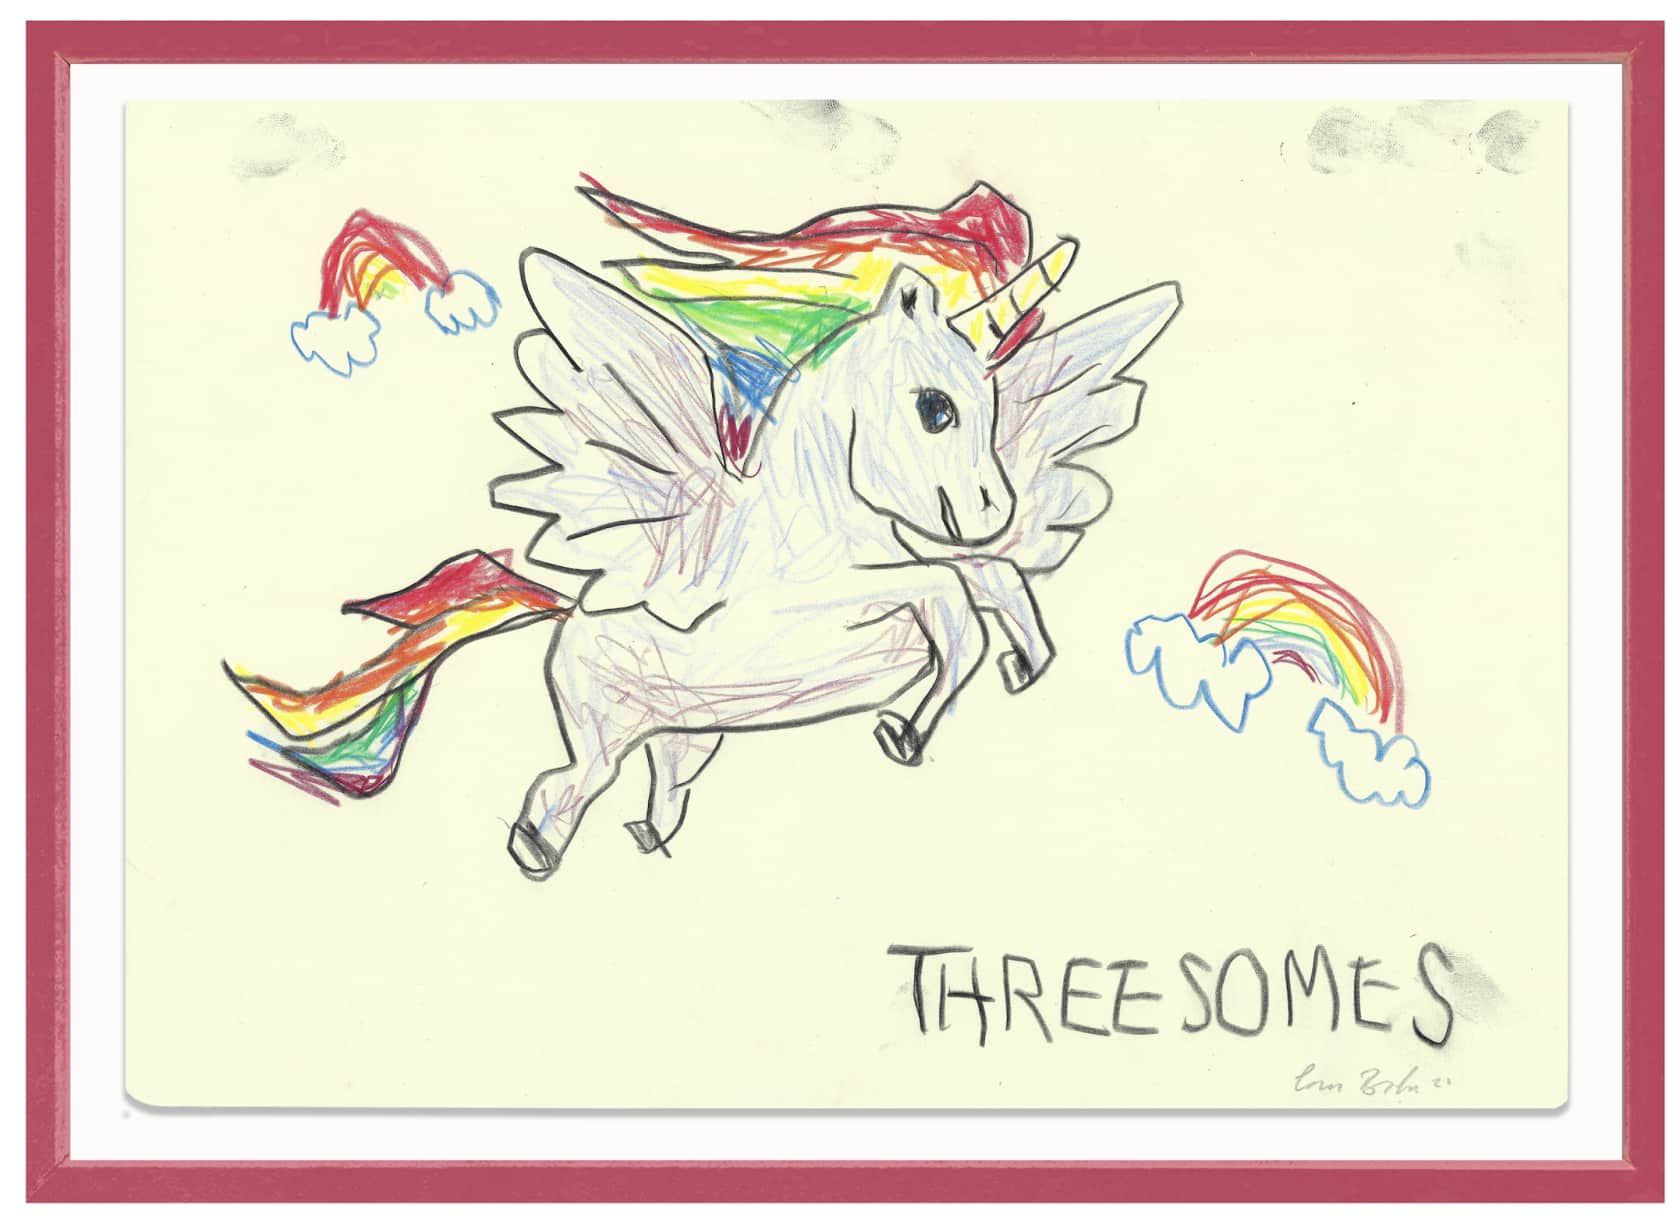 the connor brothers Threesomes Crayon on paper